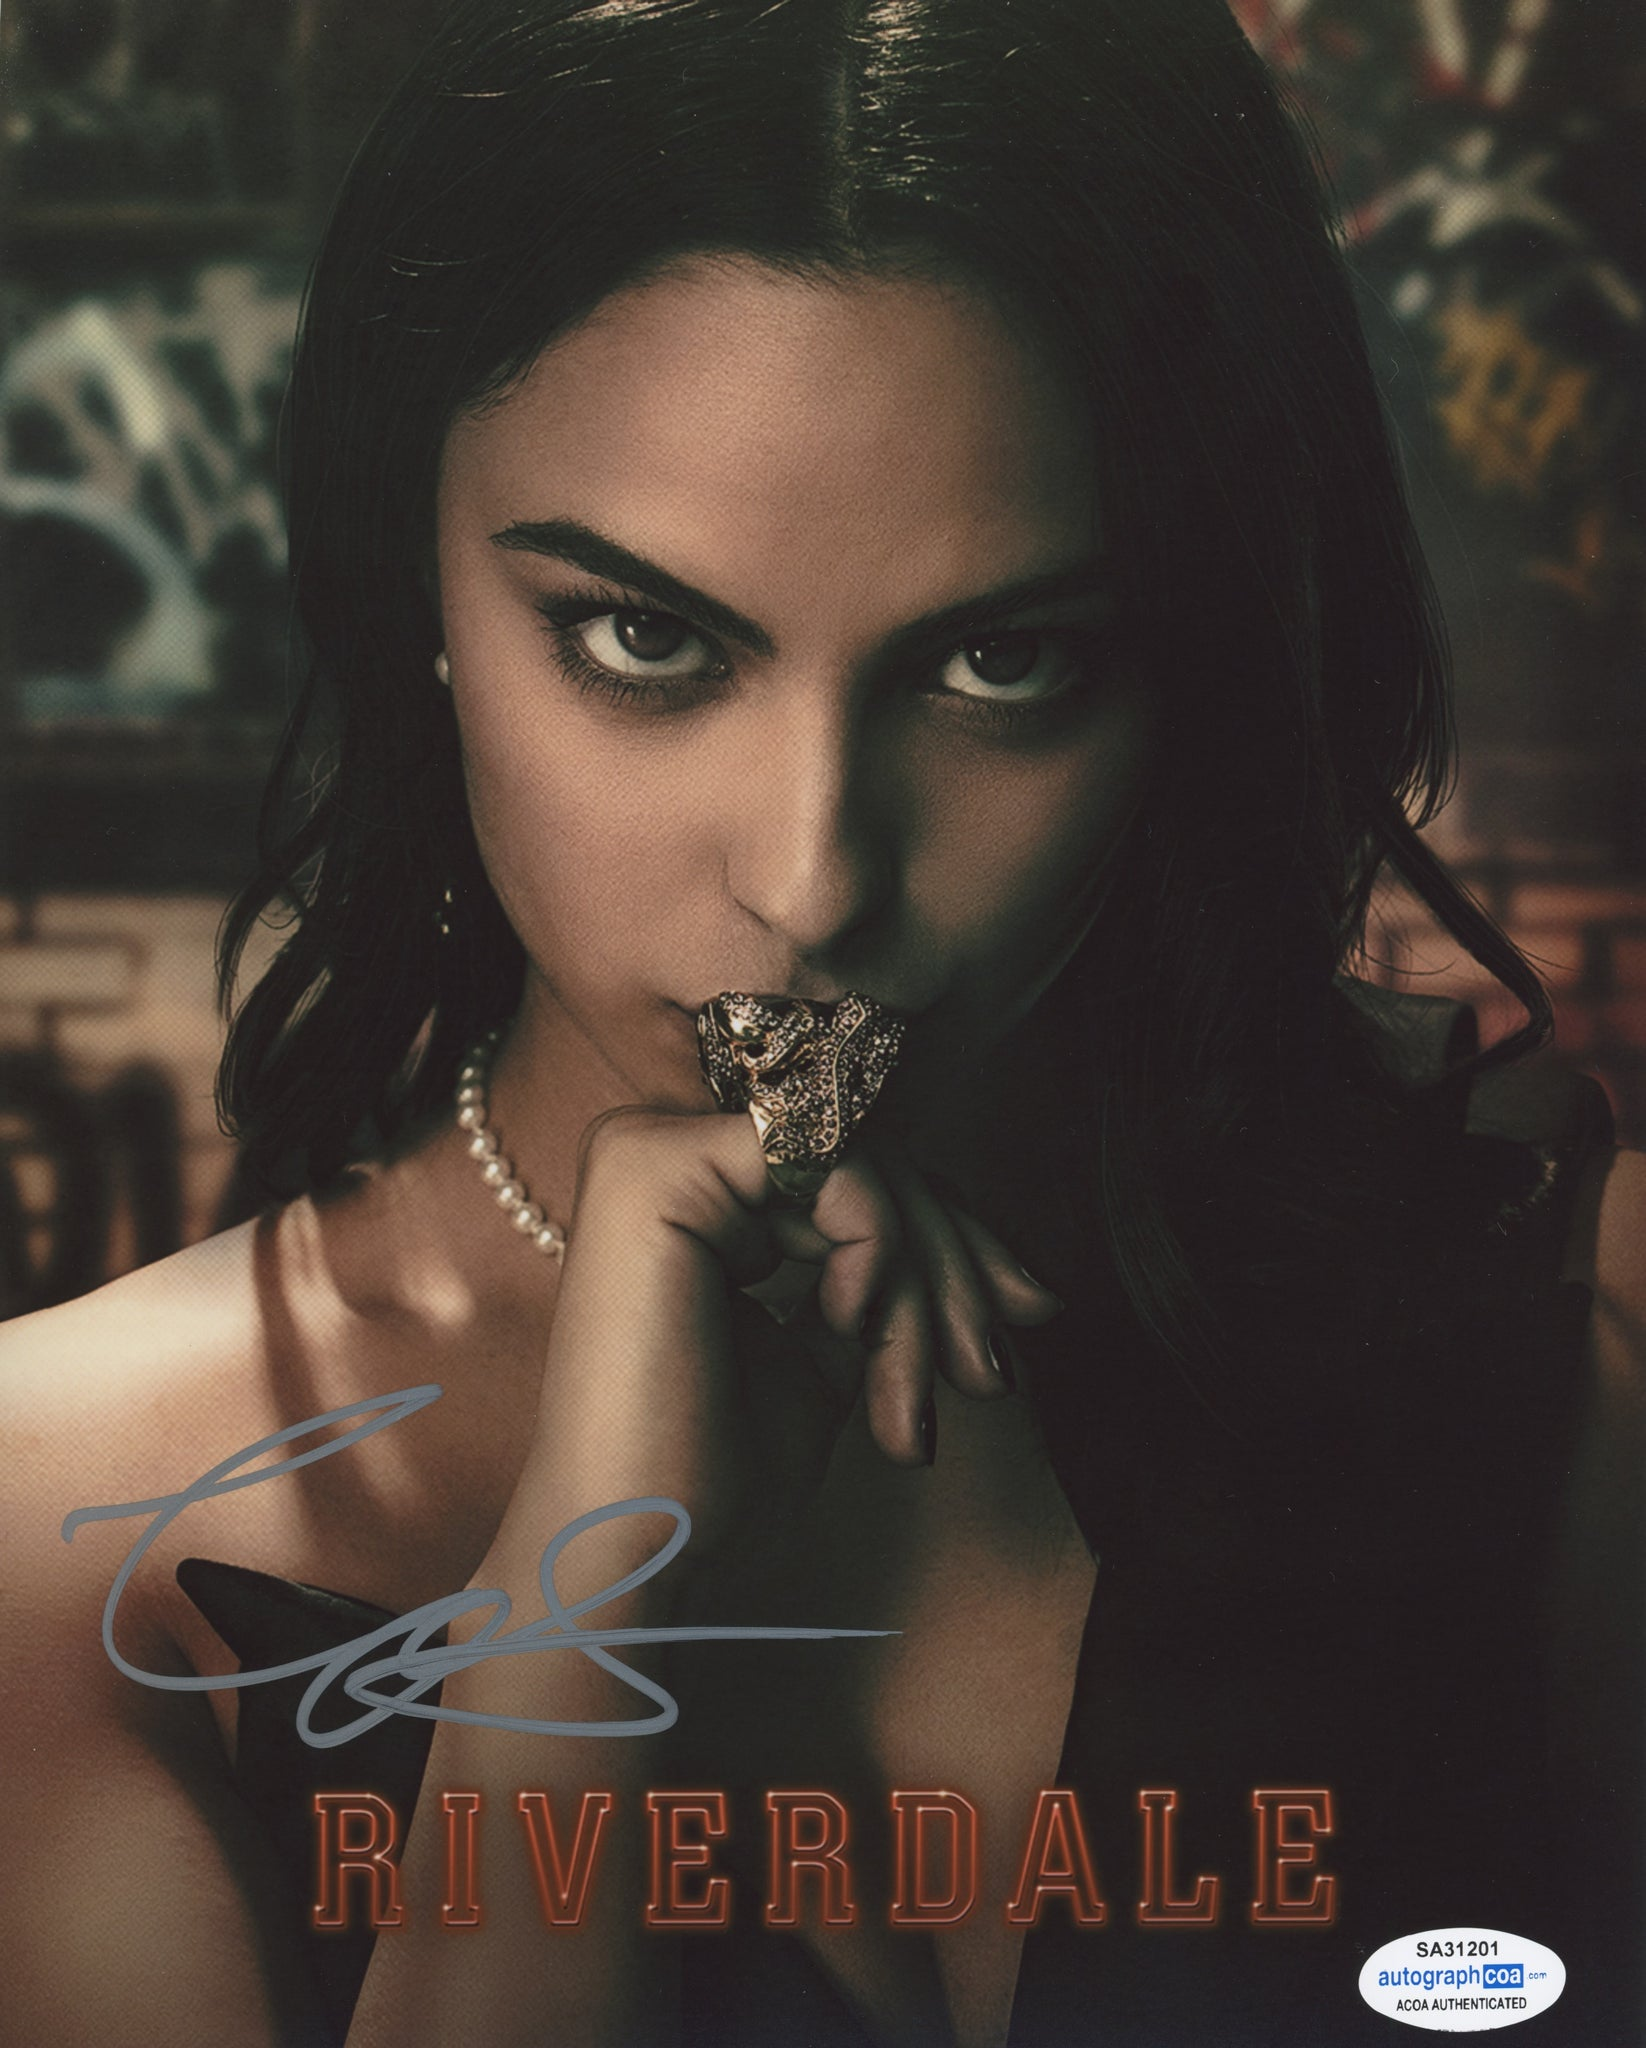 Camila Mendes Riverdale Signed Autograph 8x10 Photo ACOA #30 - Outlaw Hobbies Authentic Autographs